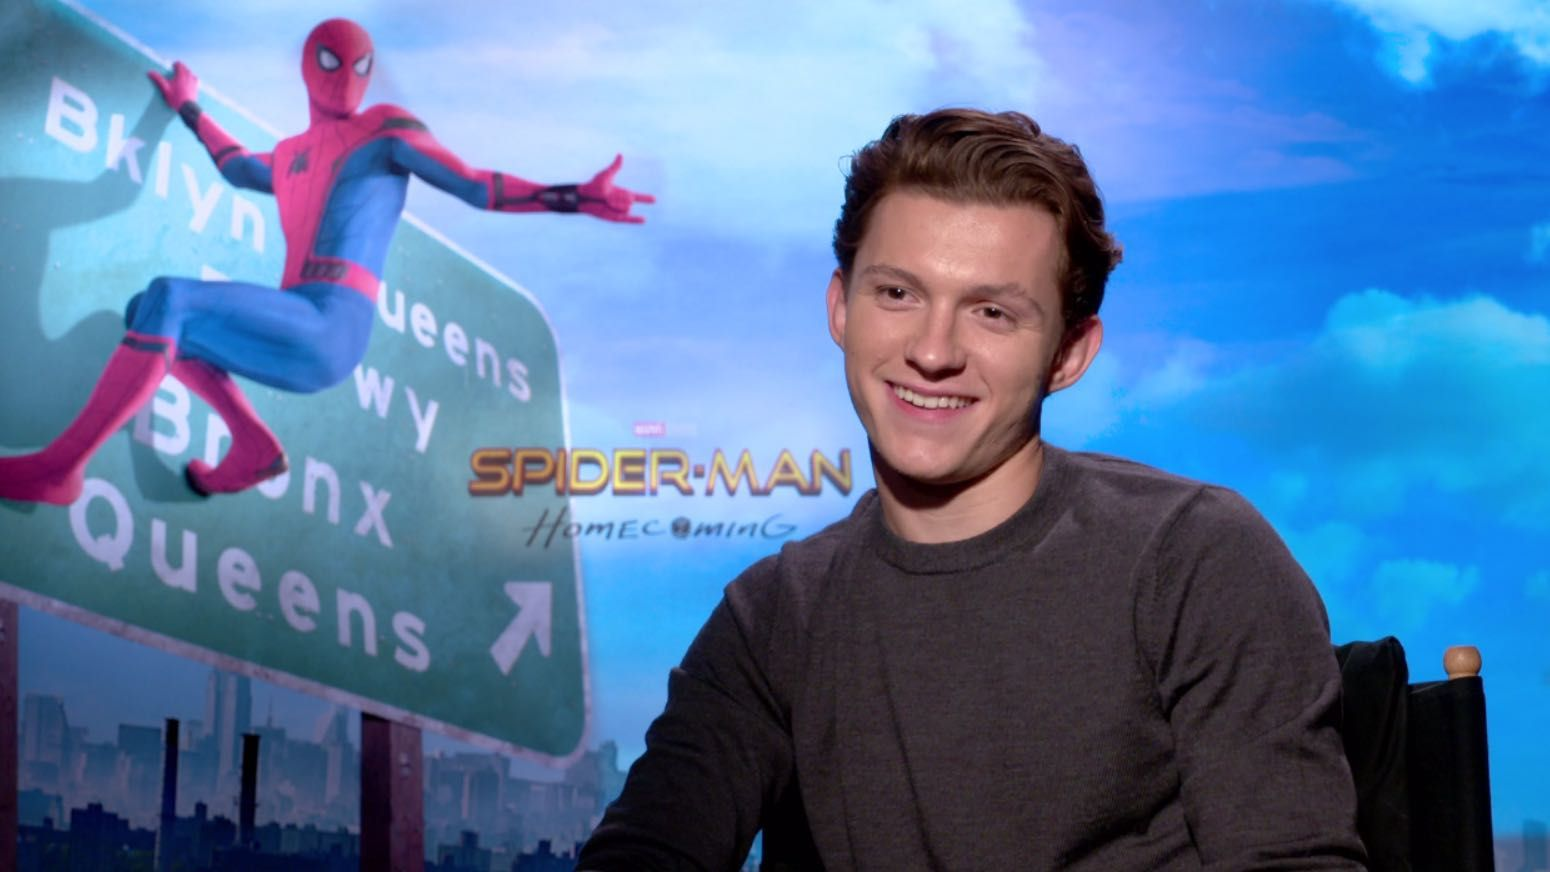 tom holland imagines ii Never (Tom Holland) Tom